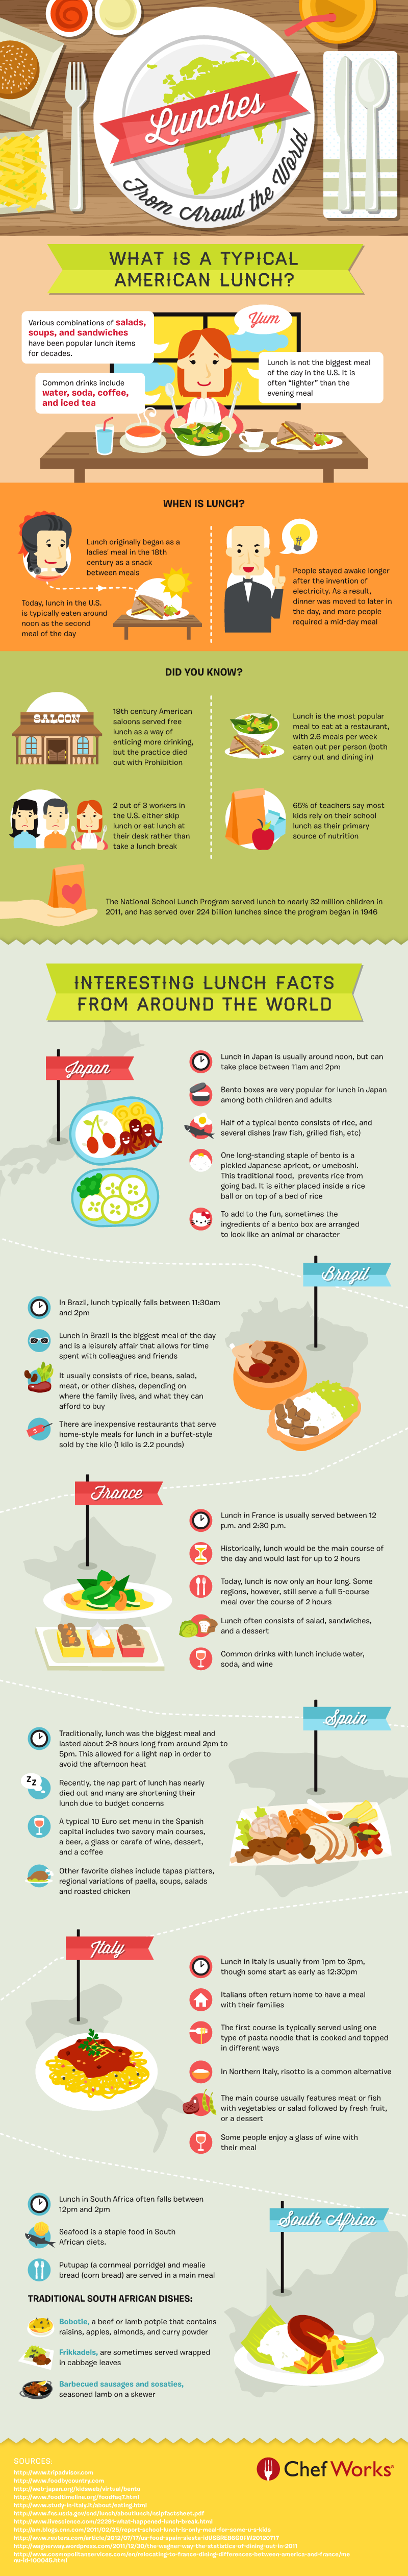 Global Lunch Trends